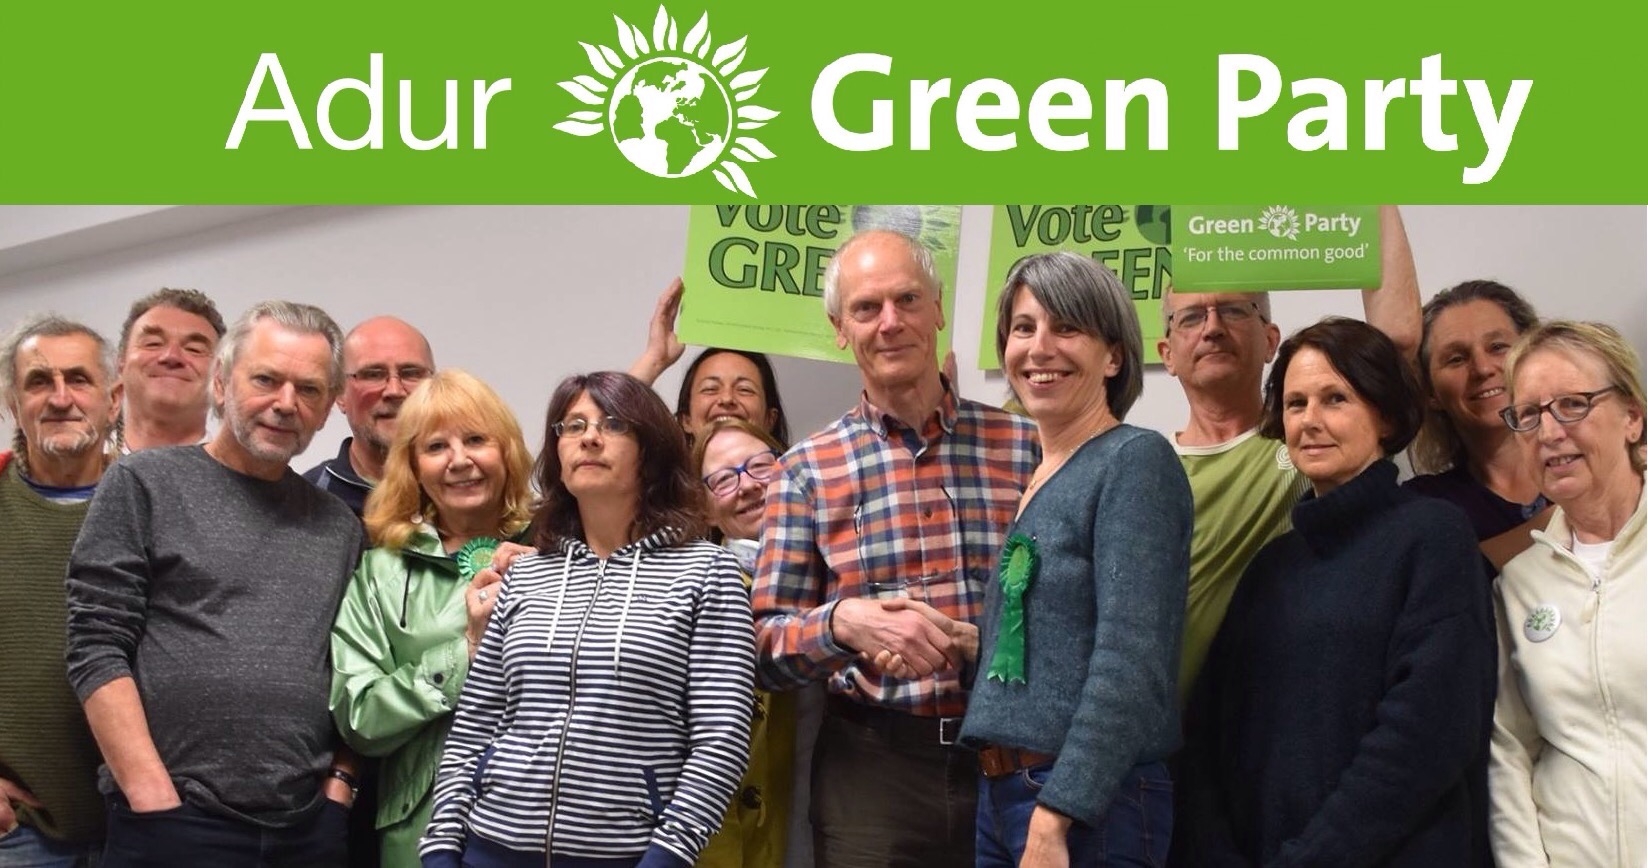 Adur Green Party People